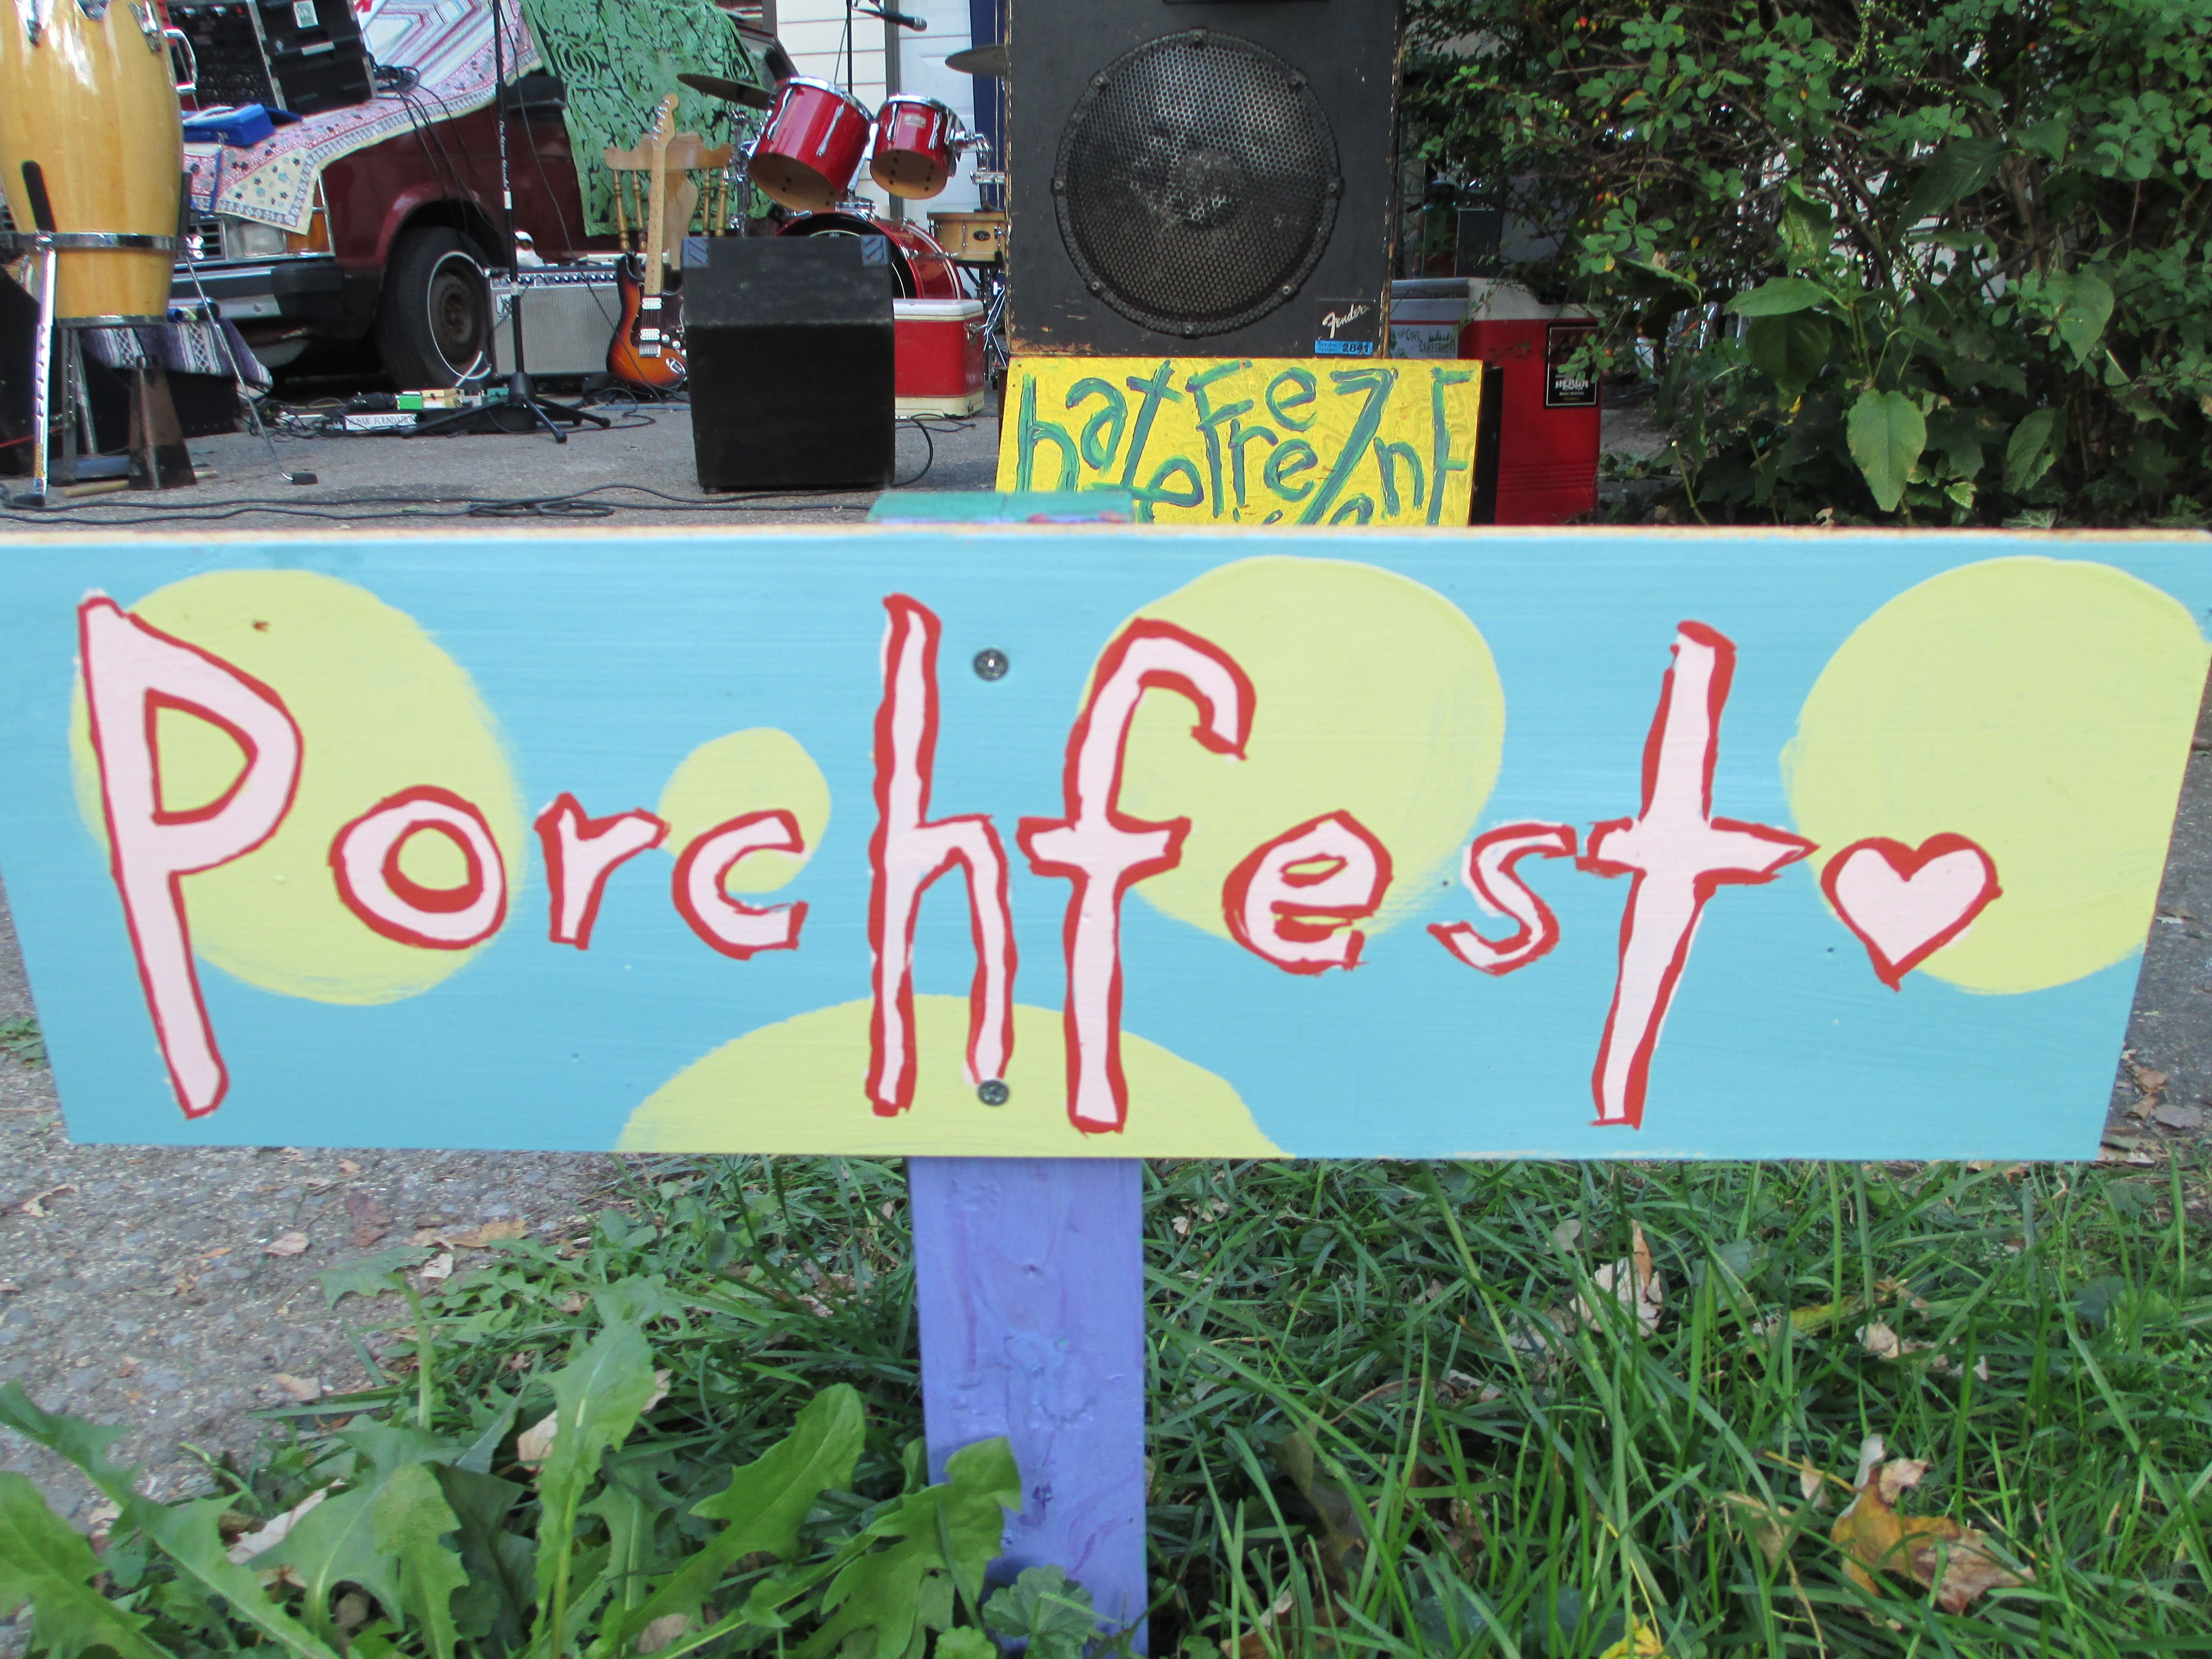 My friend, Donna Merrill, shares a fun day at her local Porchfest ...